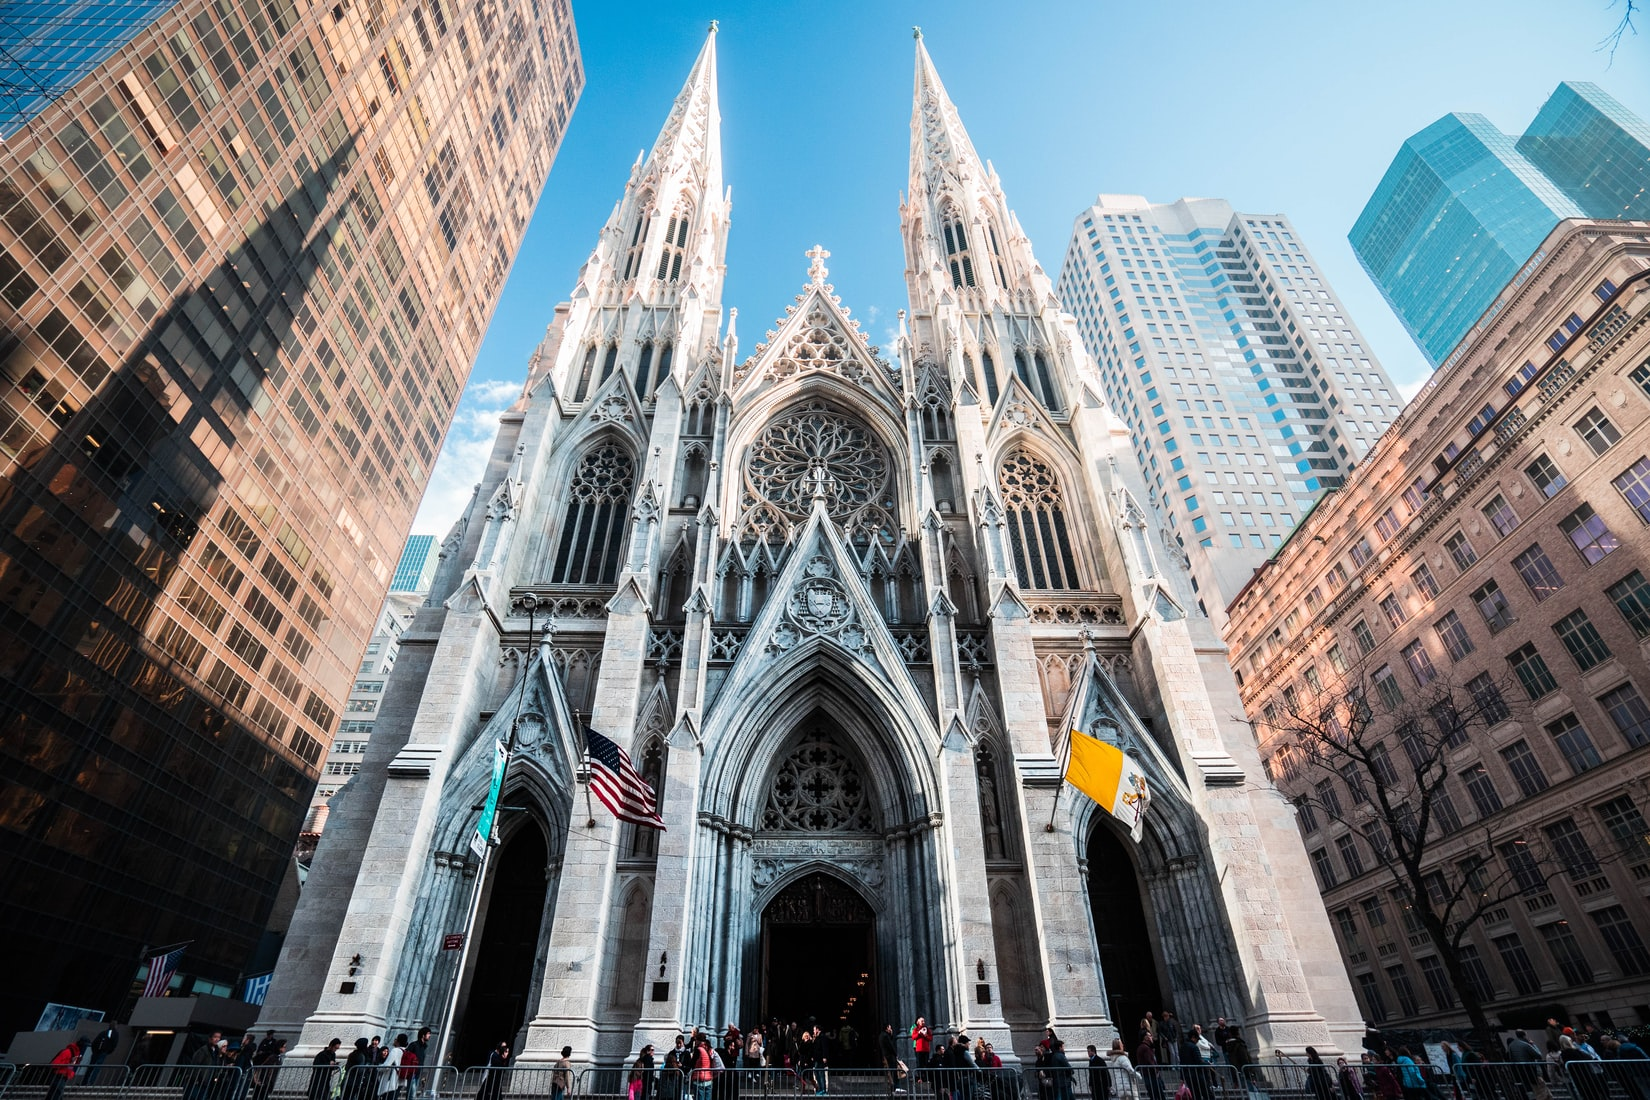 St Patrick's Cathedral in NYC